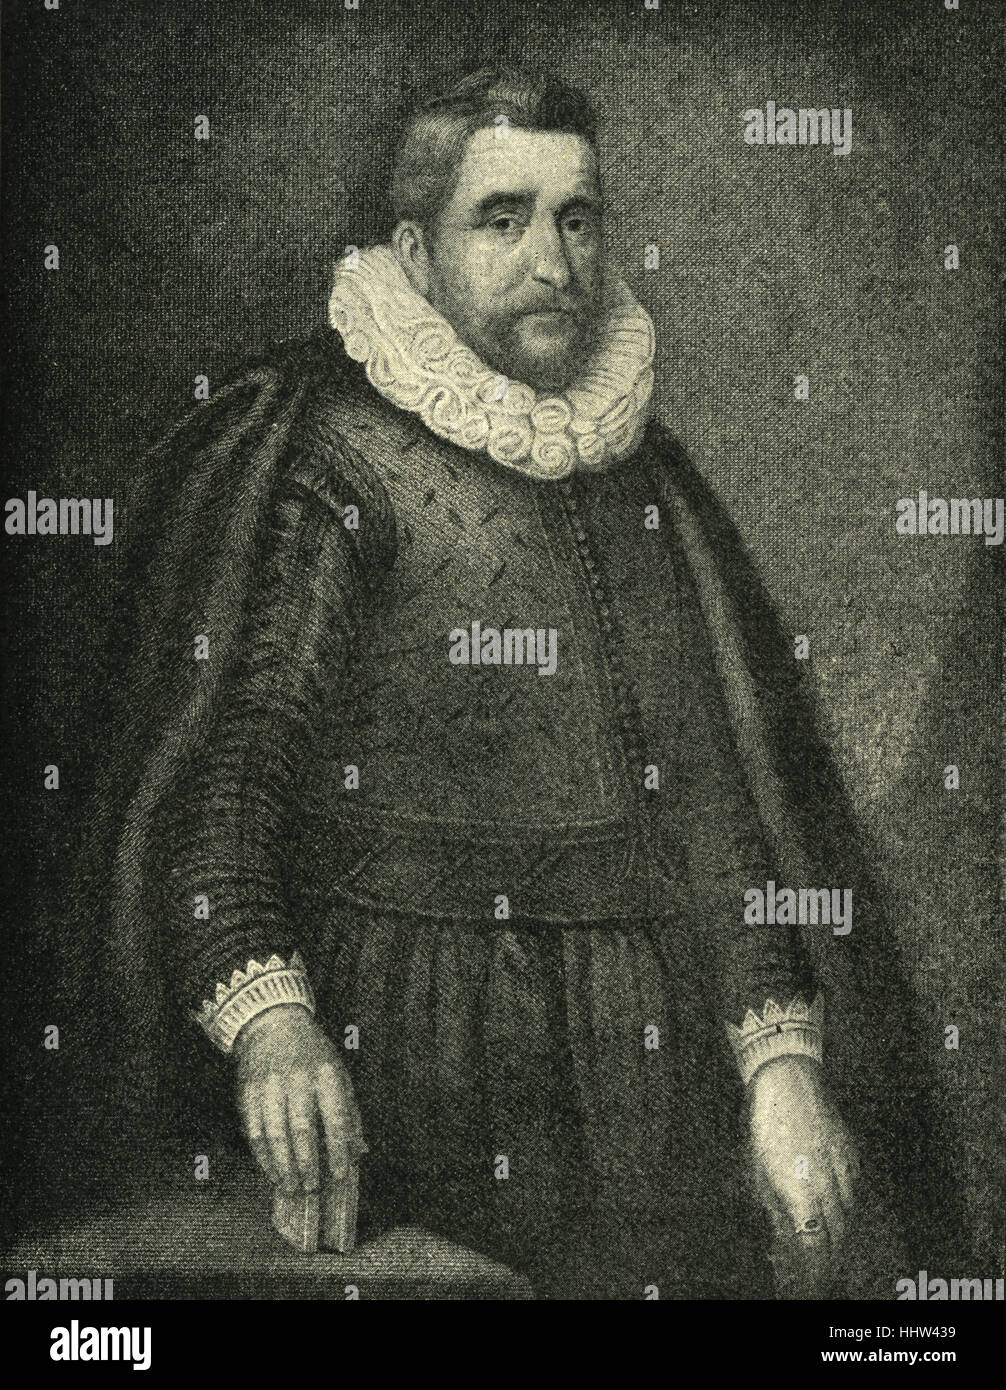 Sir Henry Wotton, portrait. English author, diplomat and politician, 1568 – 1639. - Stock Image